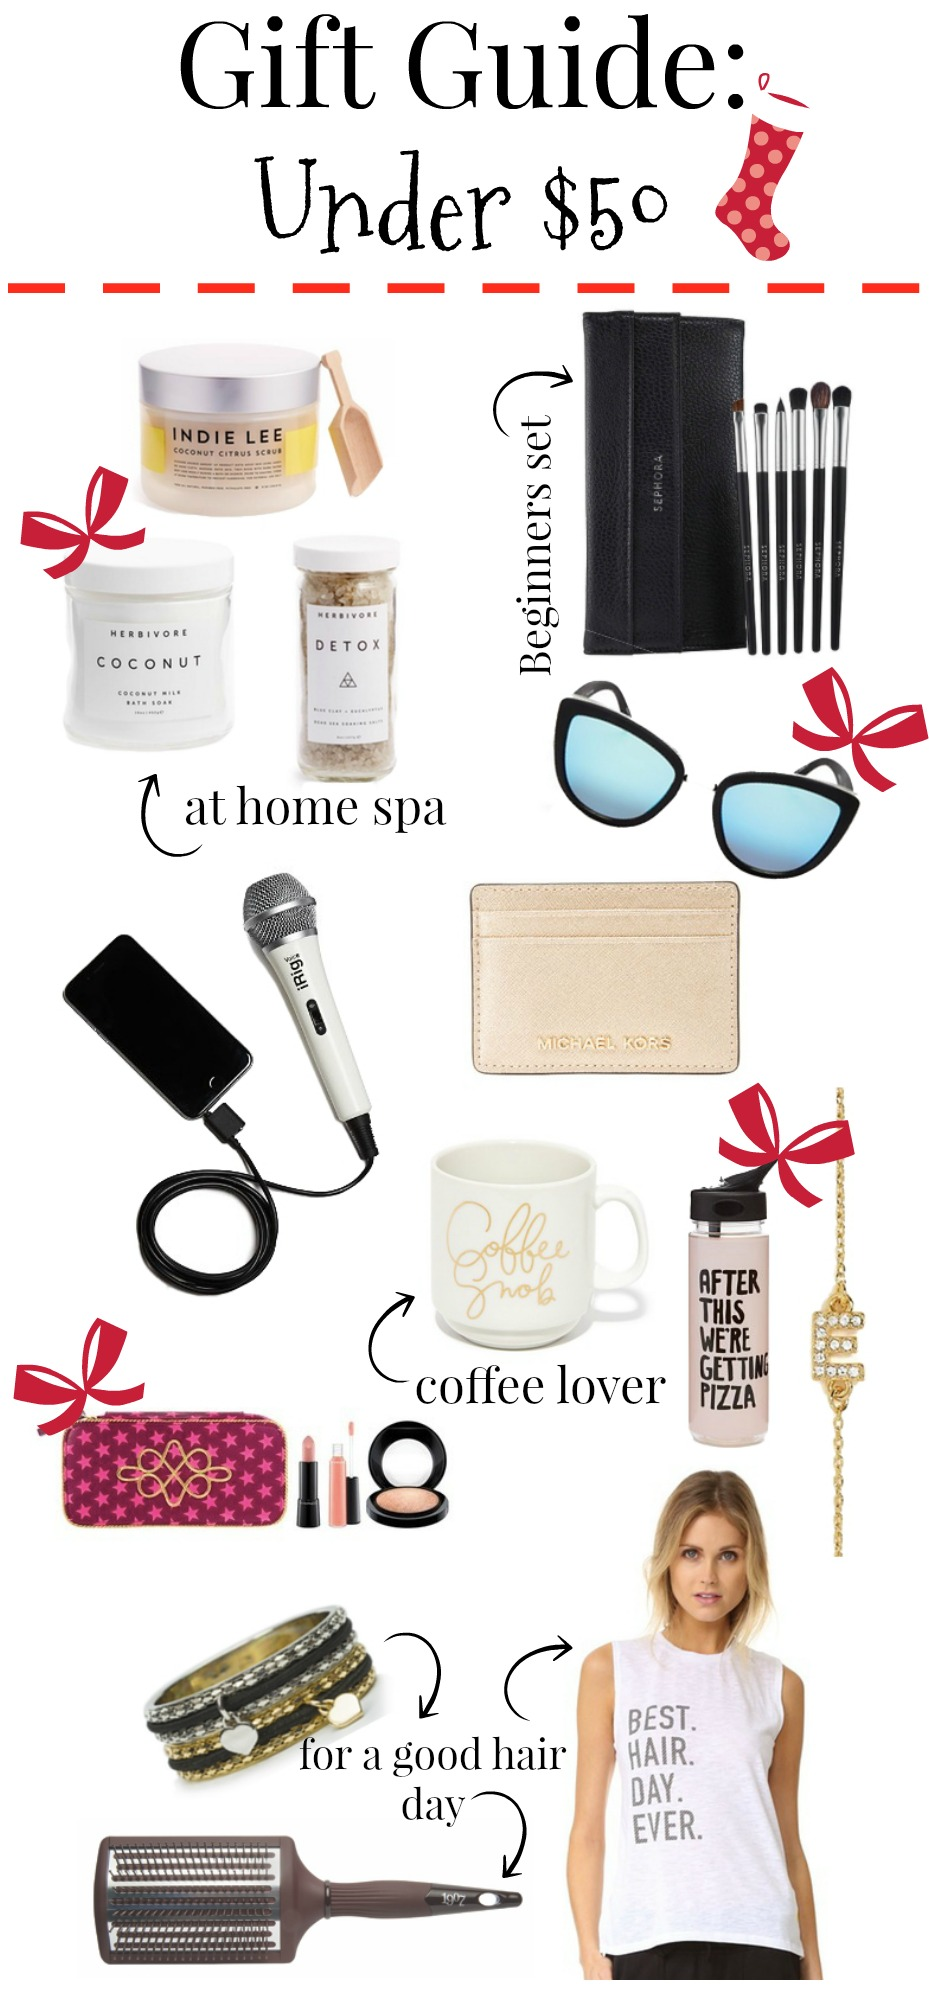 Holiday gift guide under $50 | Gift ideas under $50 | Gift Ideas for her | Uptown with Elly Brown - Holiday Gift Guide under $50 by Houston style blogger Uptown with Elly Brown